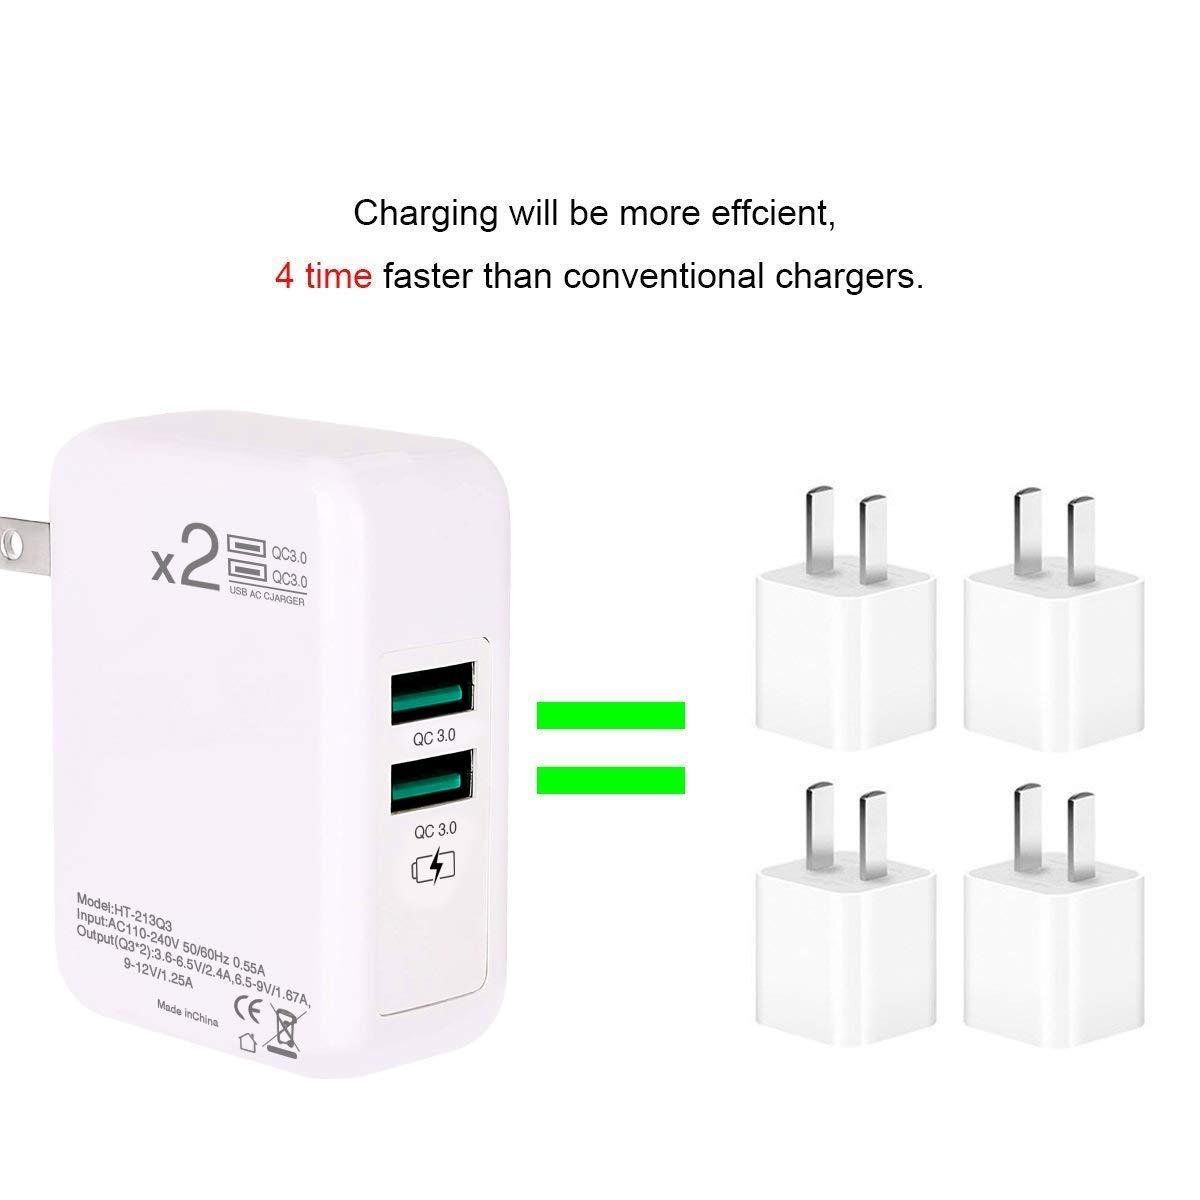 Dual Quick Charger 3 0 Usb Wall Charger Adapter Charging